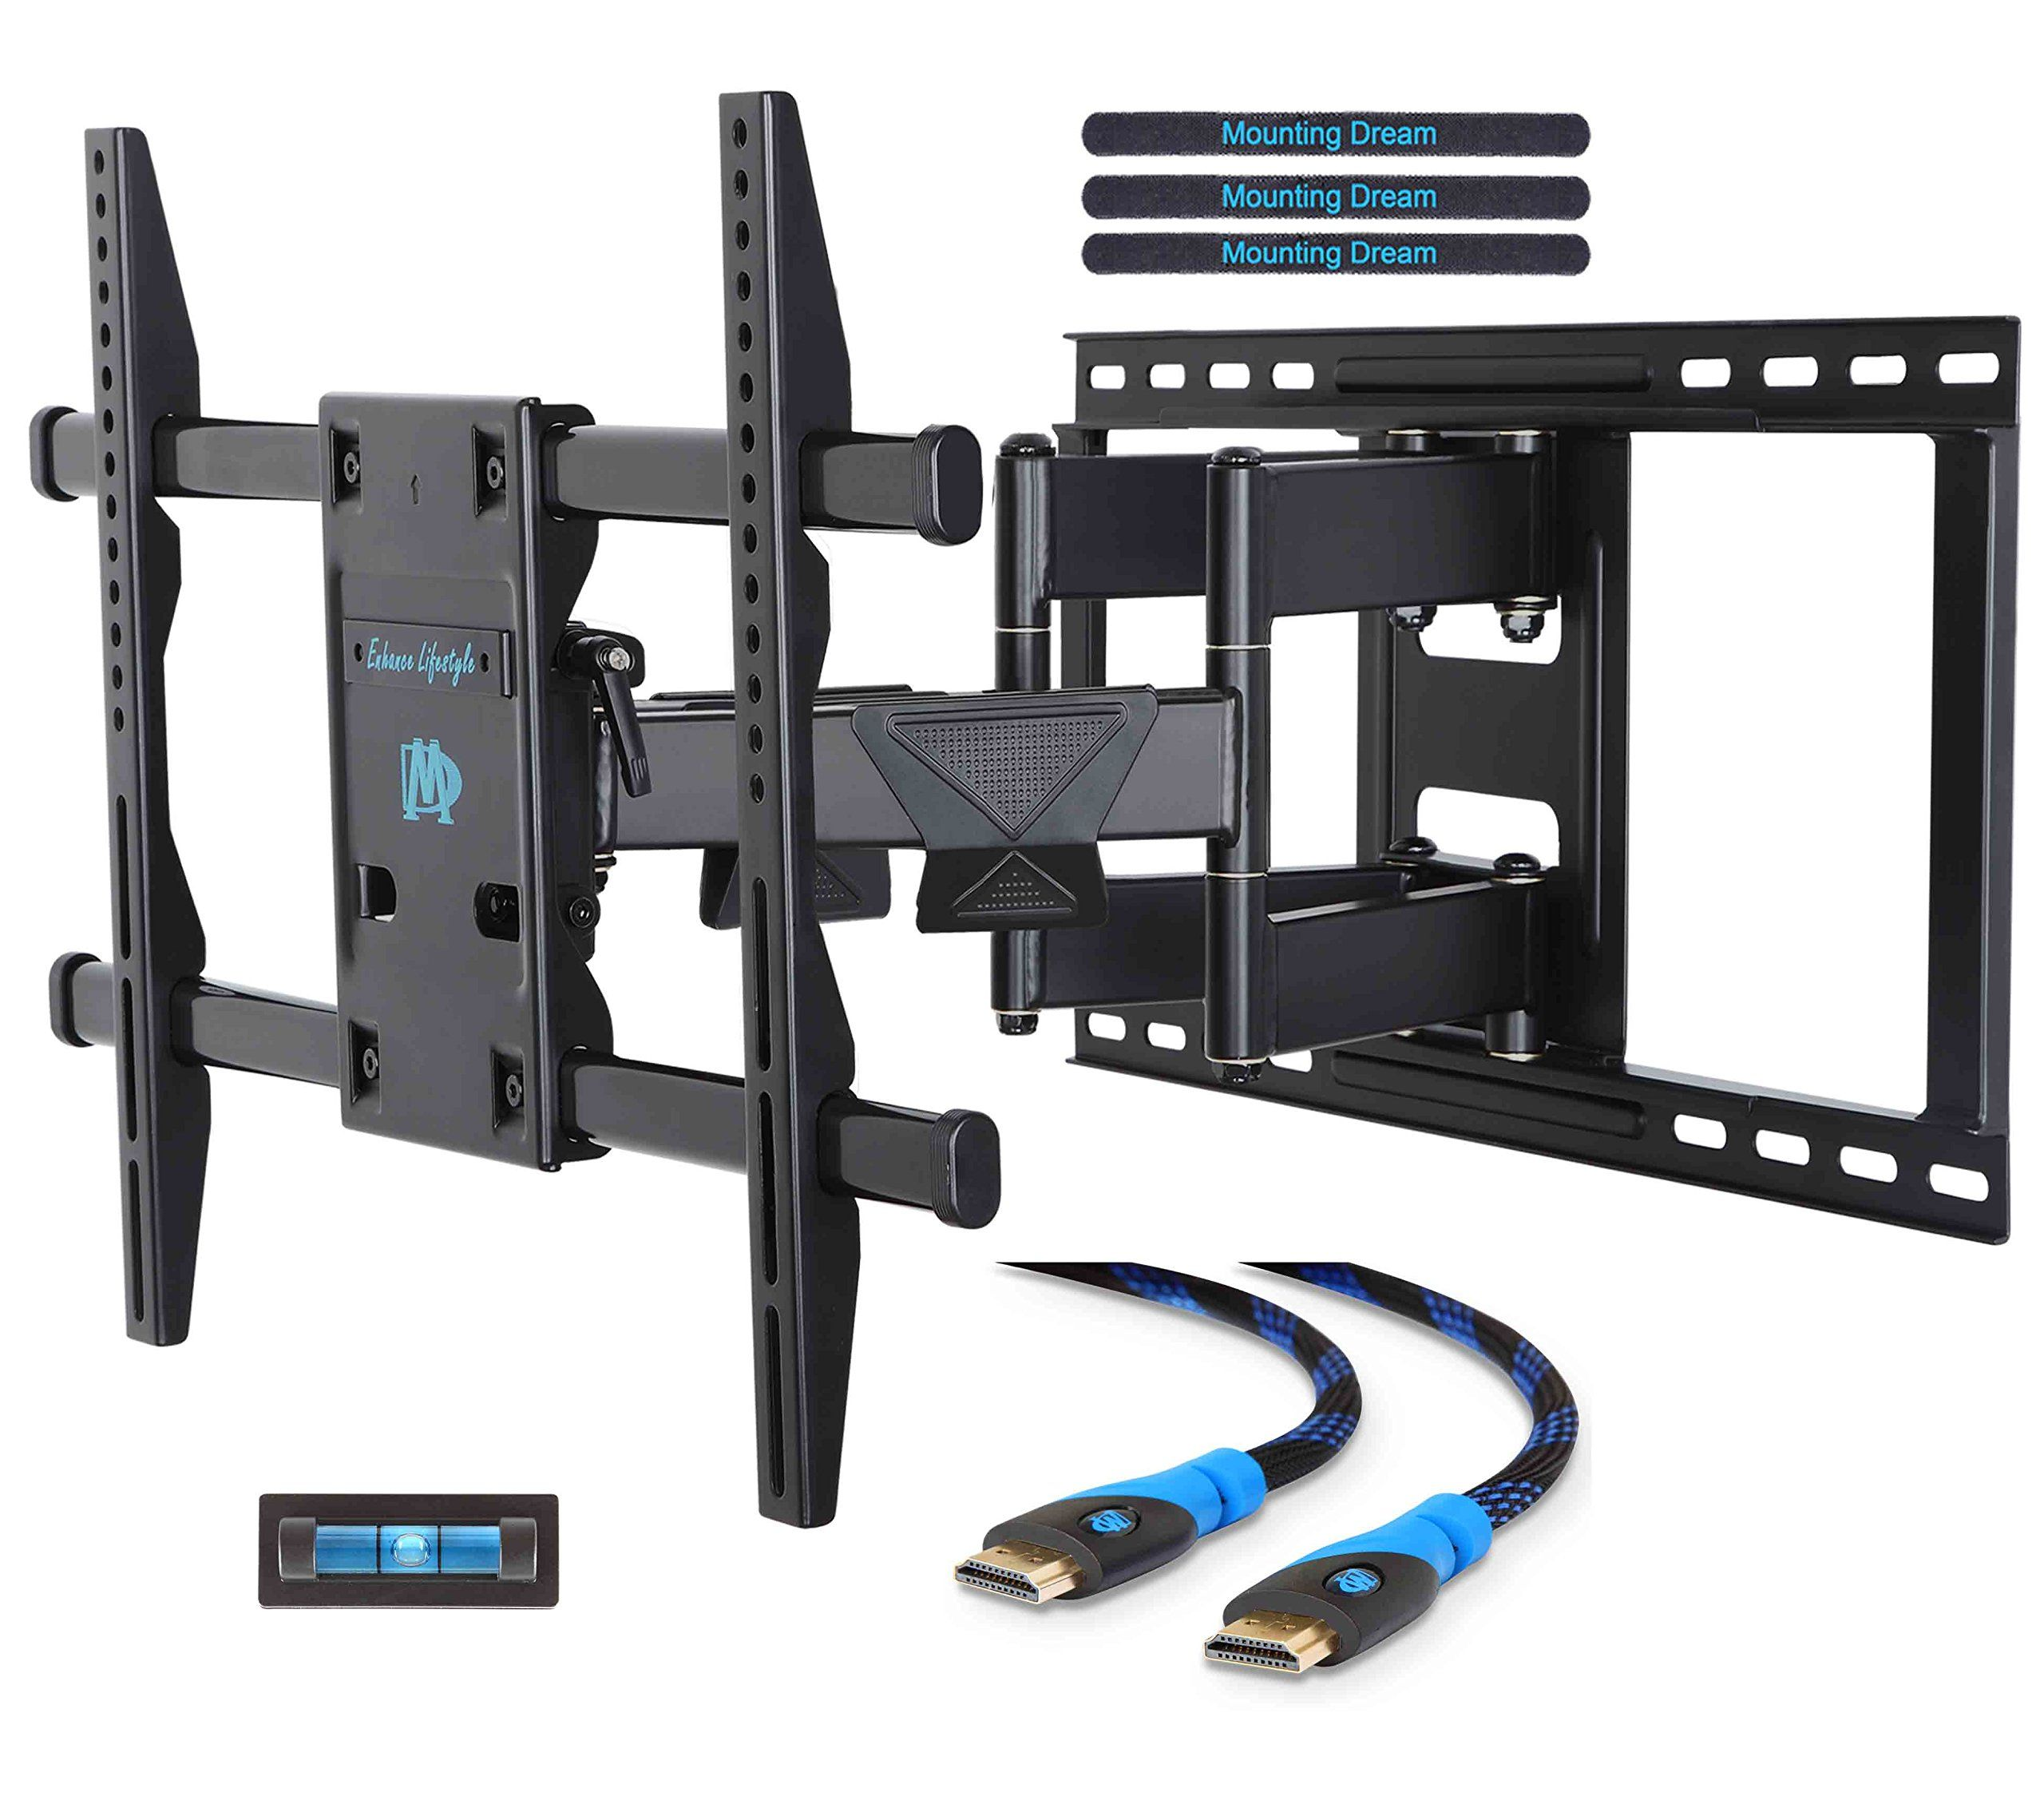 Mounting Dream Md2298 Premium Tv Wall Mount Bracket With Full Motion Articulating Arm For Most 42 70 I Wall Mounted Tv Wall Mount Bracket Tv Wall Mount Bracket